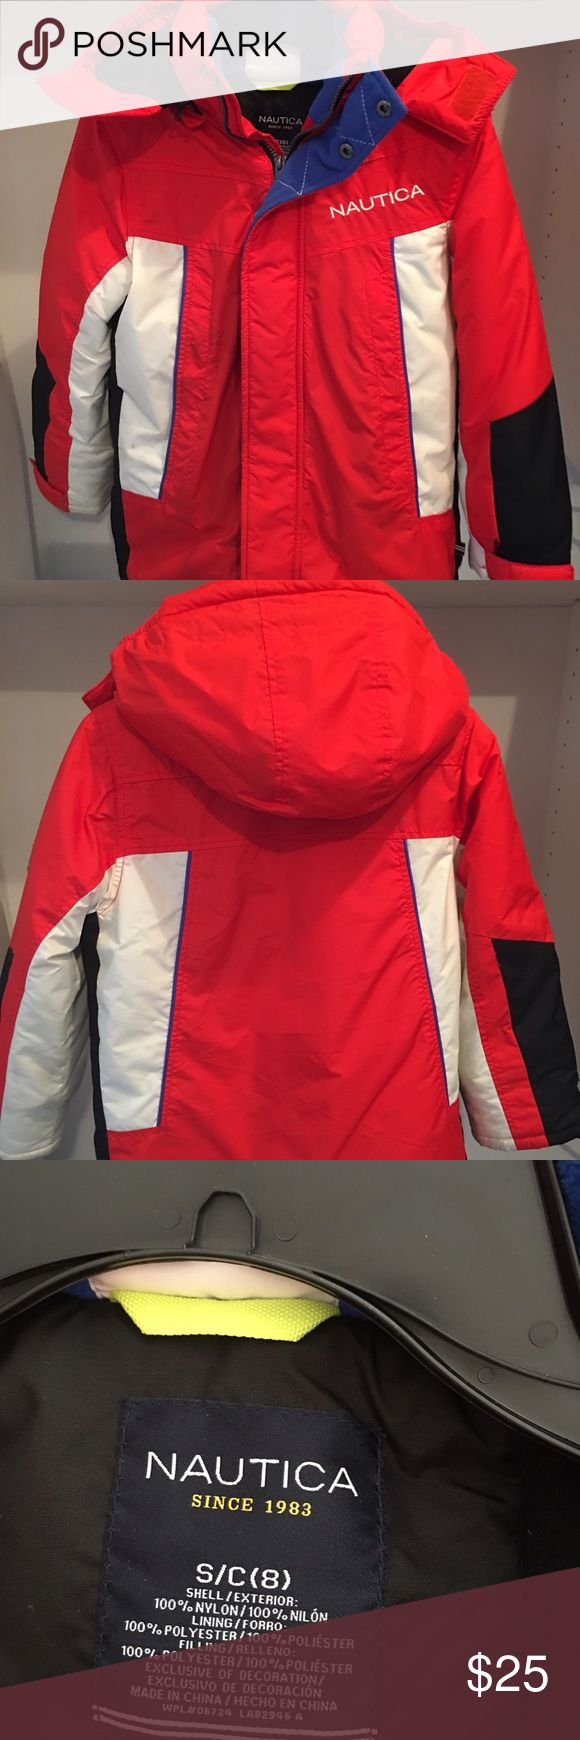 ❄️NWOT Like new heavy duty young boys winter coat ❄️Excellent condition! Nautica boys winter coat, removable hat. Let's make this yours today! Nautica Jackets & Coats